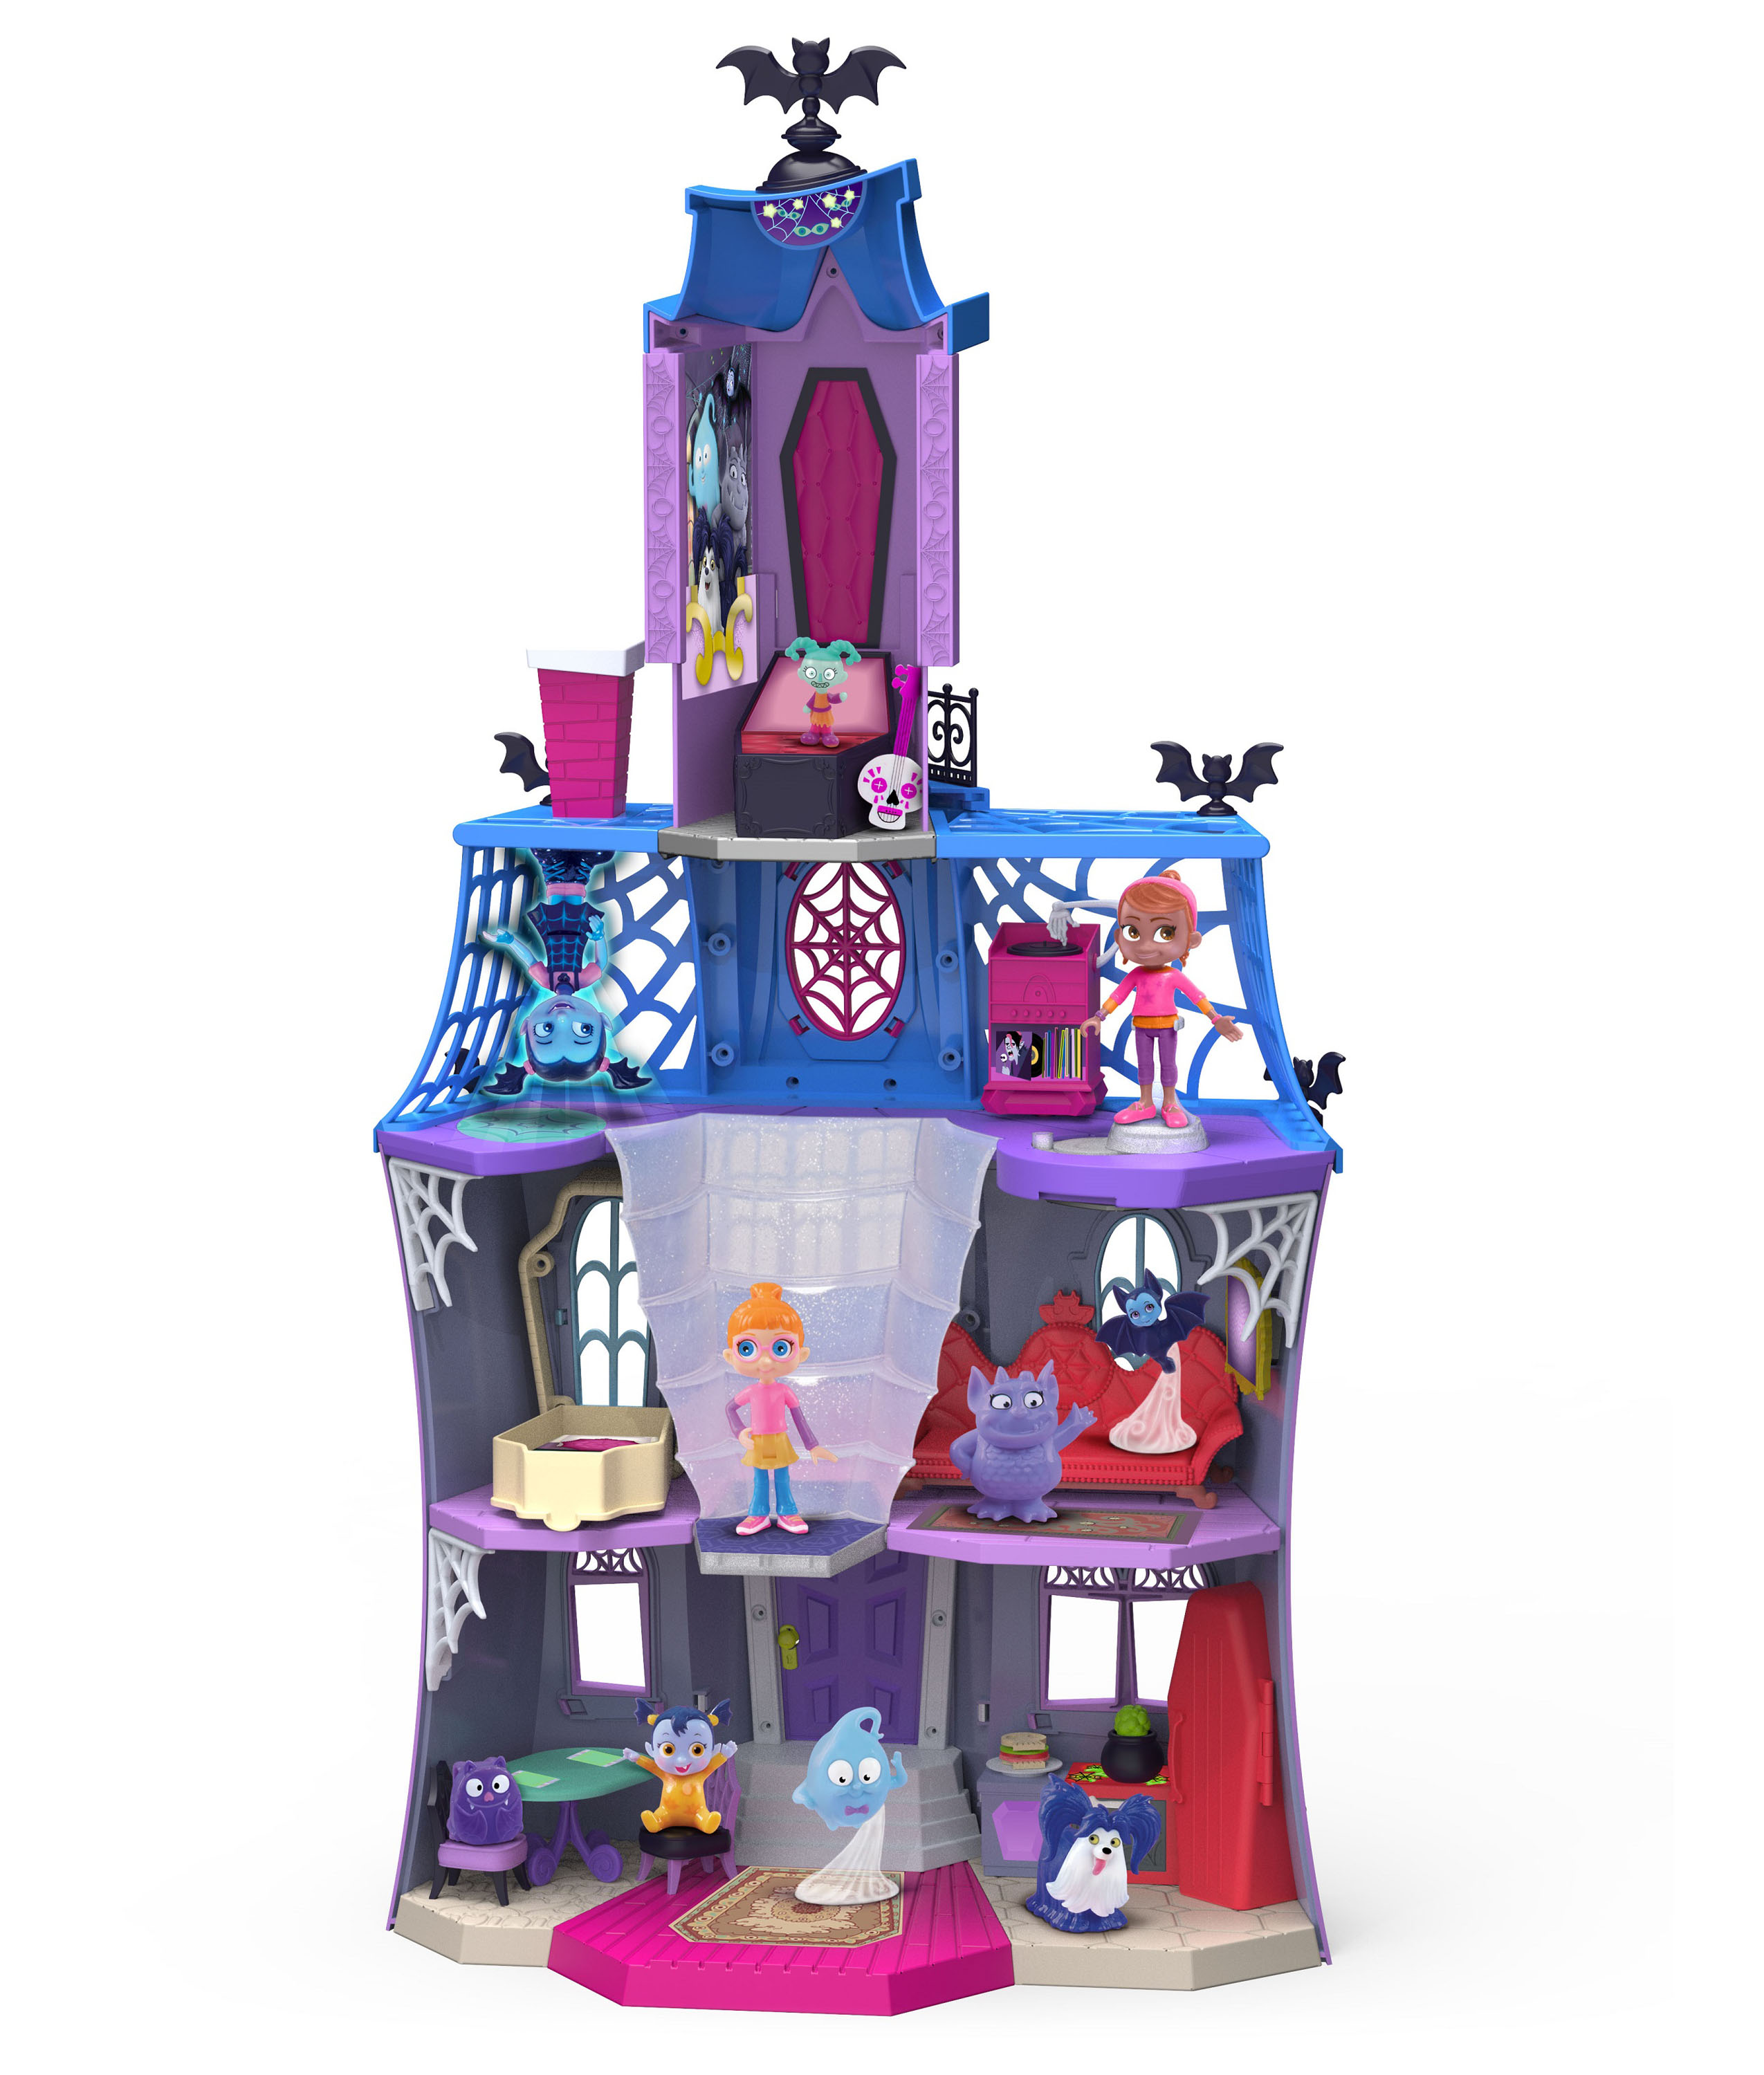 Disney Junior Vampirina Scare B&B Playset by Just Play